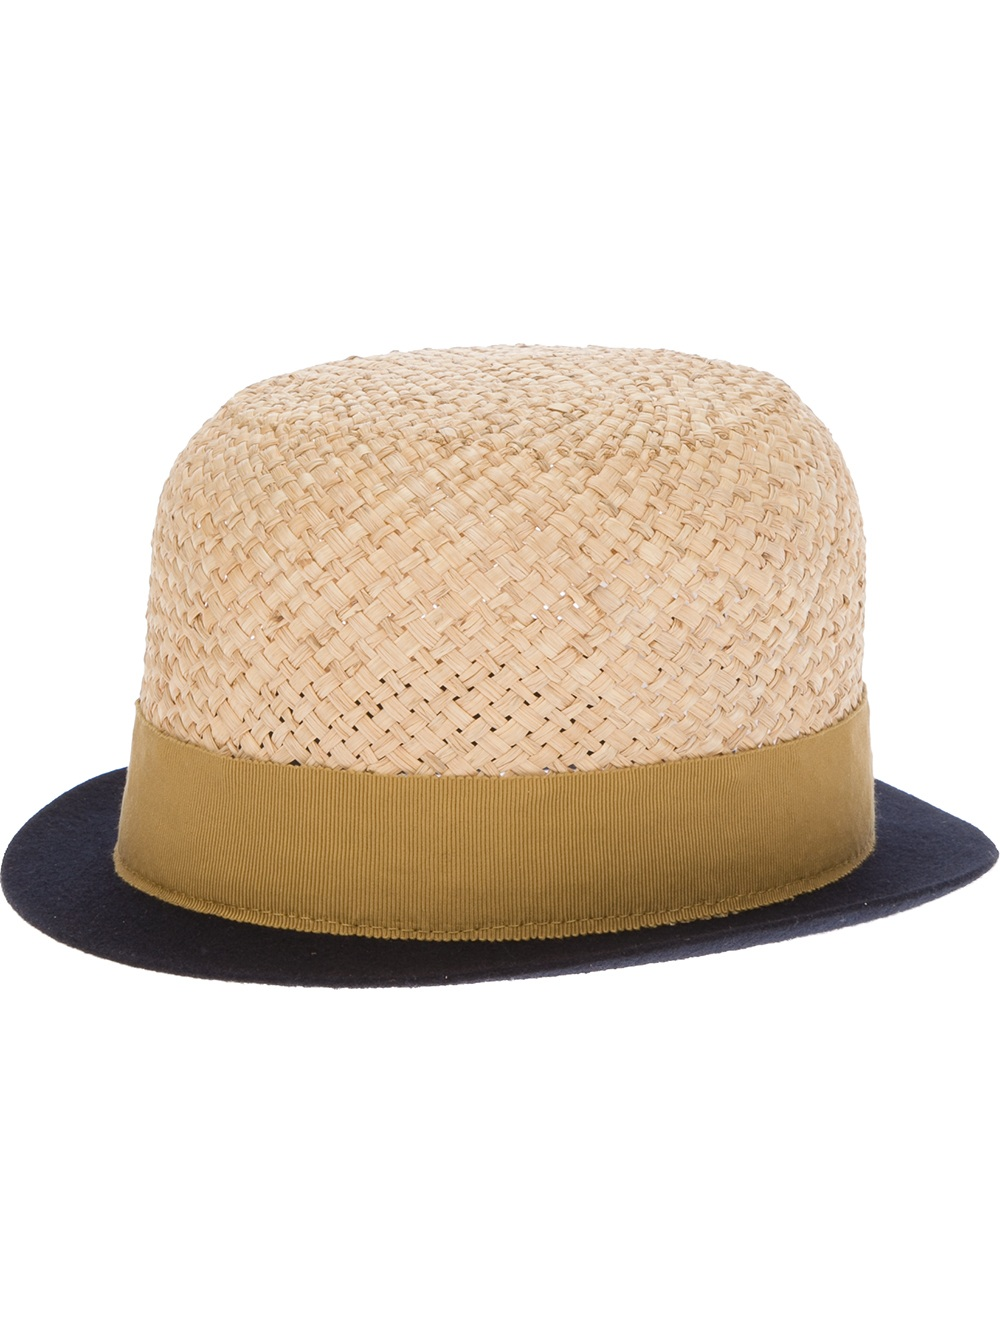 3948974f356 Lyst - Henrik Vibskov Straw Baller Hat in Natural